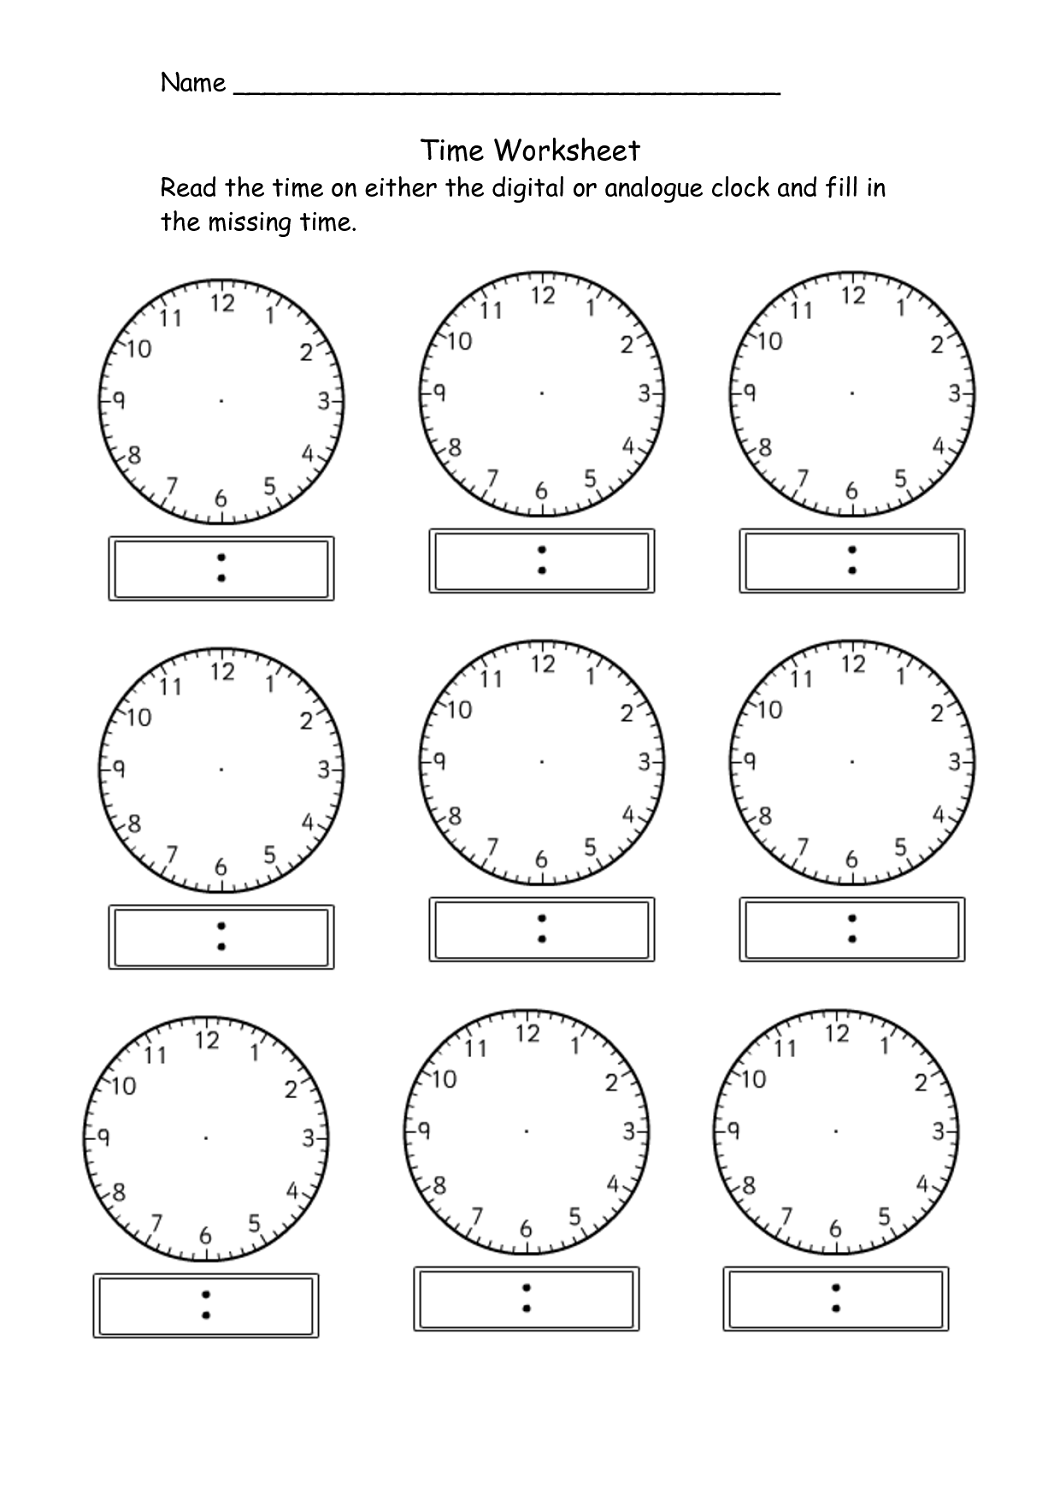 blank clock worksheet to print  telling the time  pinterest  blank clock worksheet to print for your kidsassessment in naming times